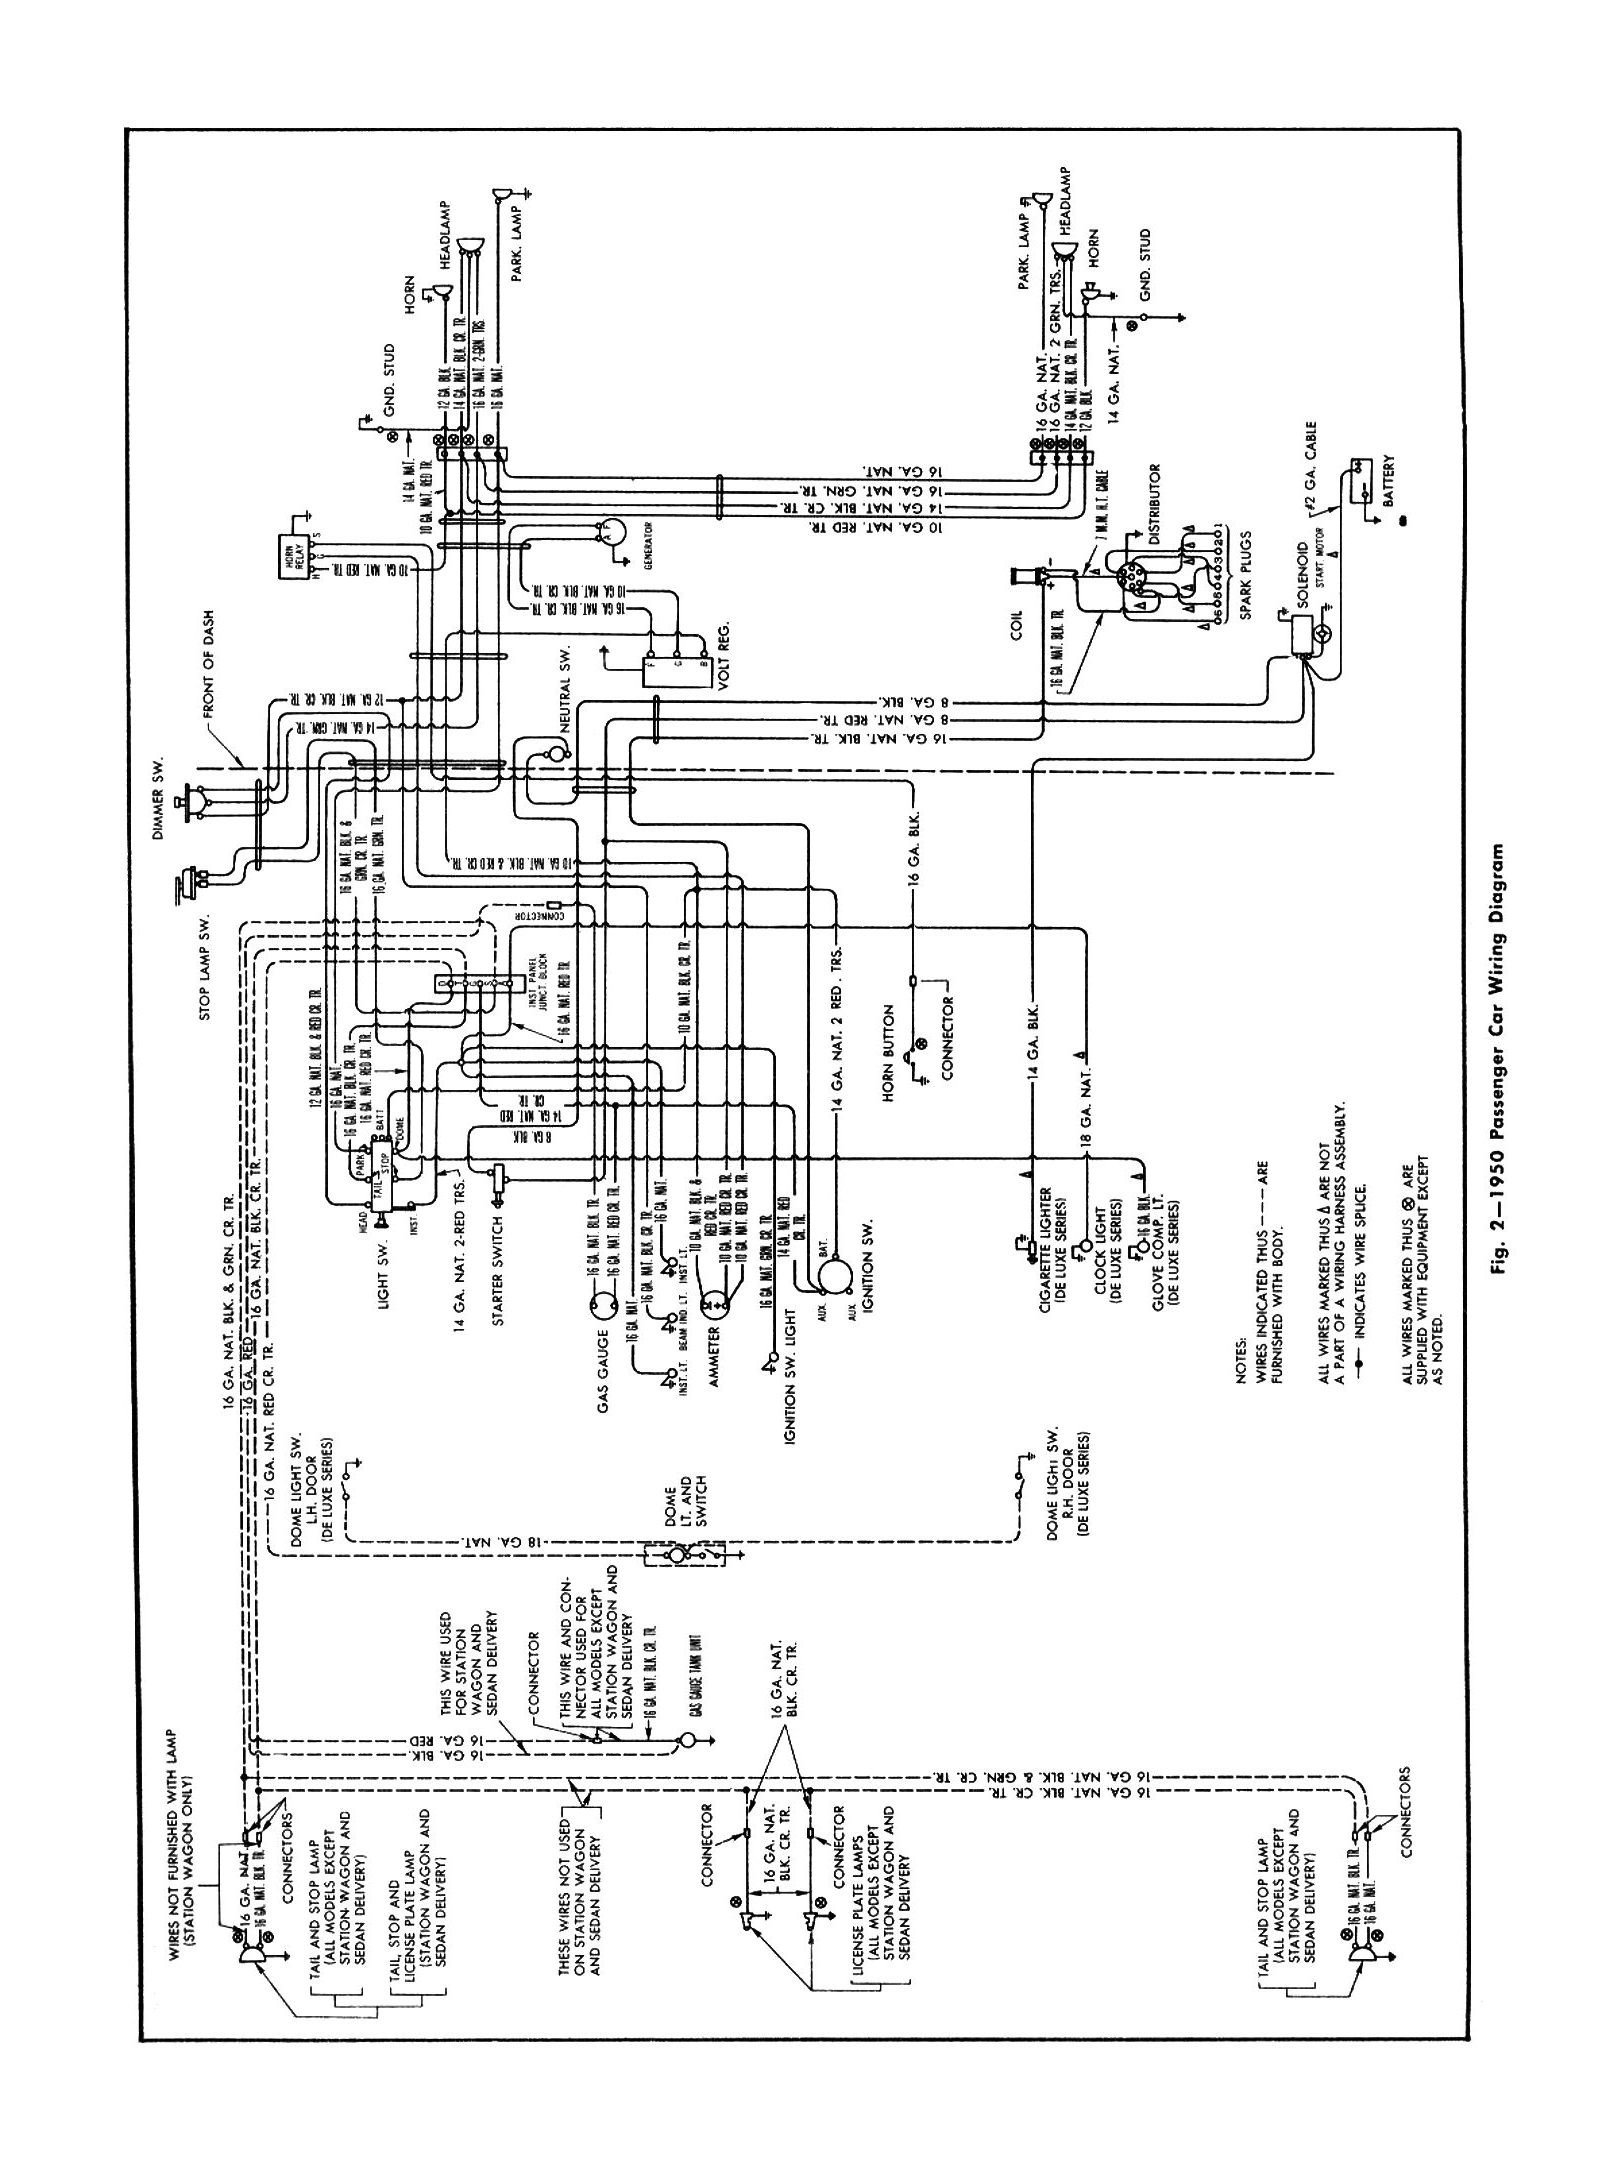 2009 08 16_161740_1950_Chevy_Wiring_Diagram2 i have a 1950 chevrolet coupe i need information on how to wire 1949 Chevy 3100 at reclaimingppi.co